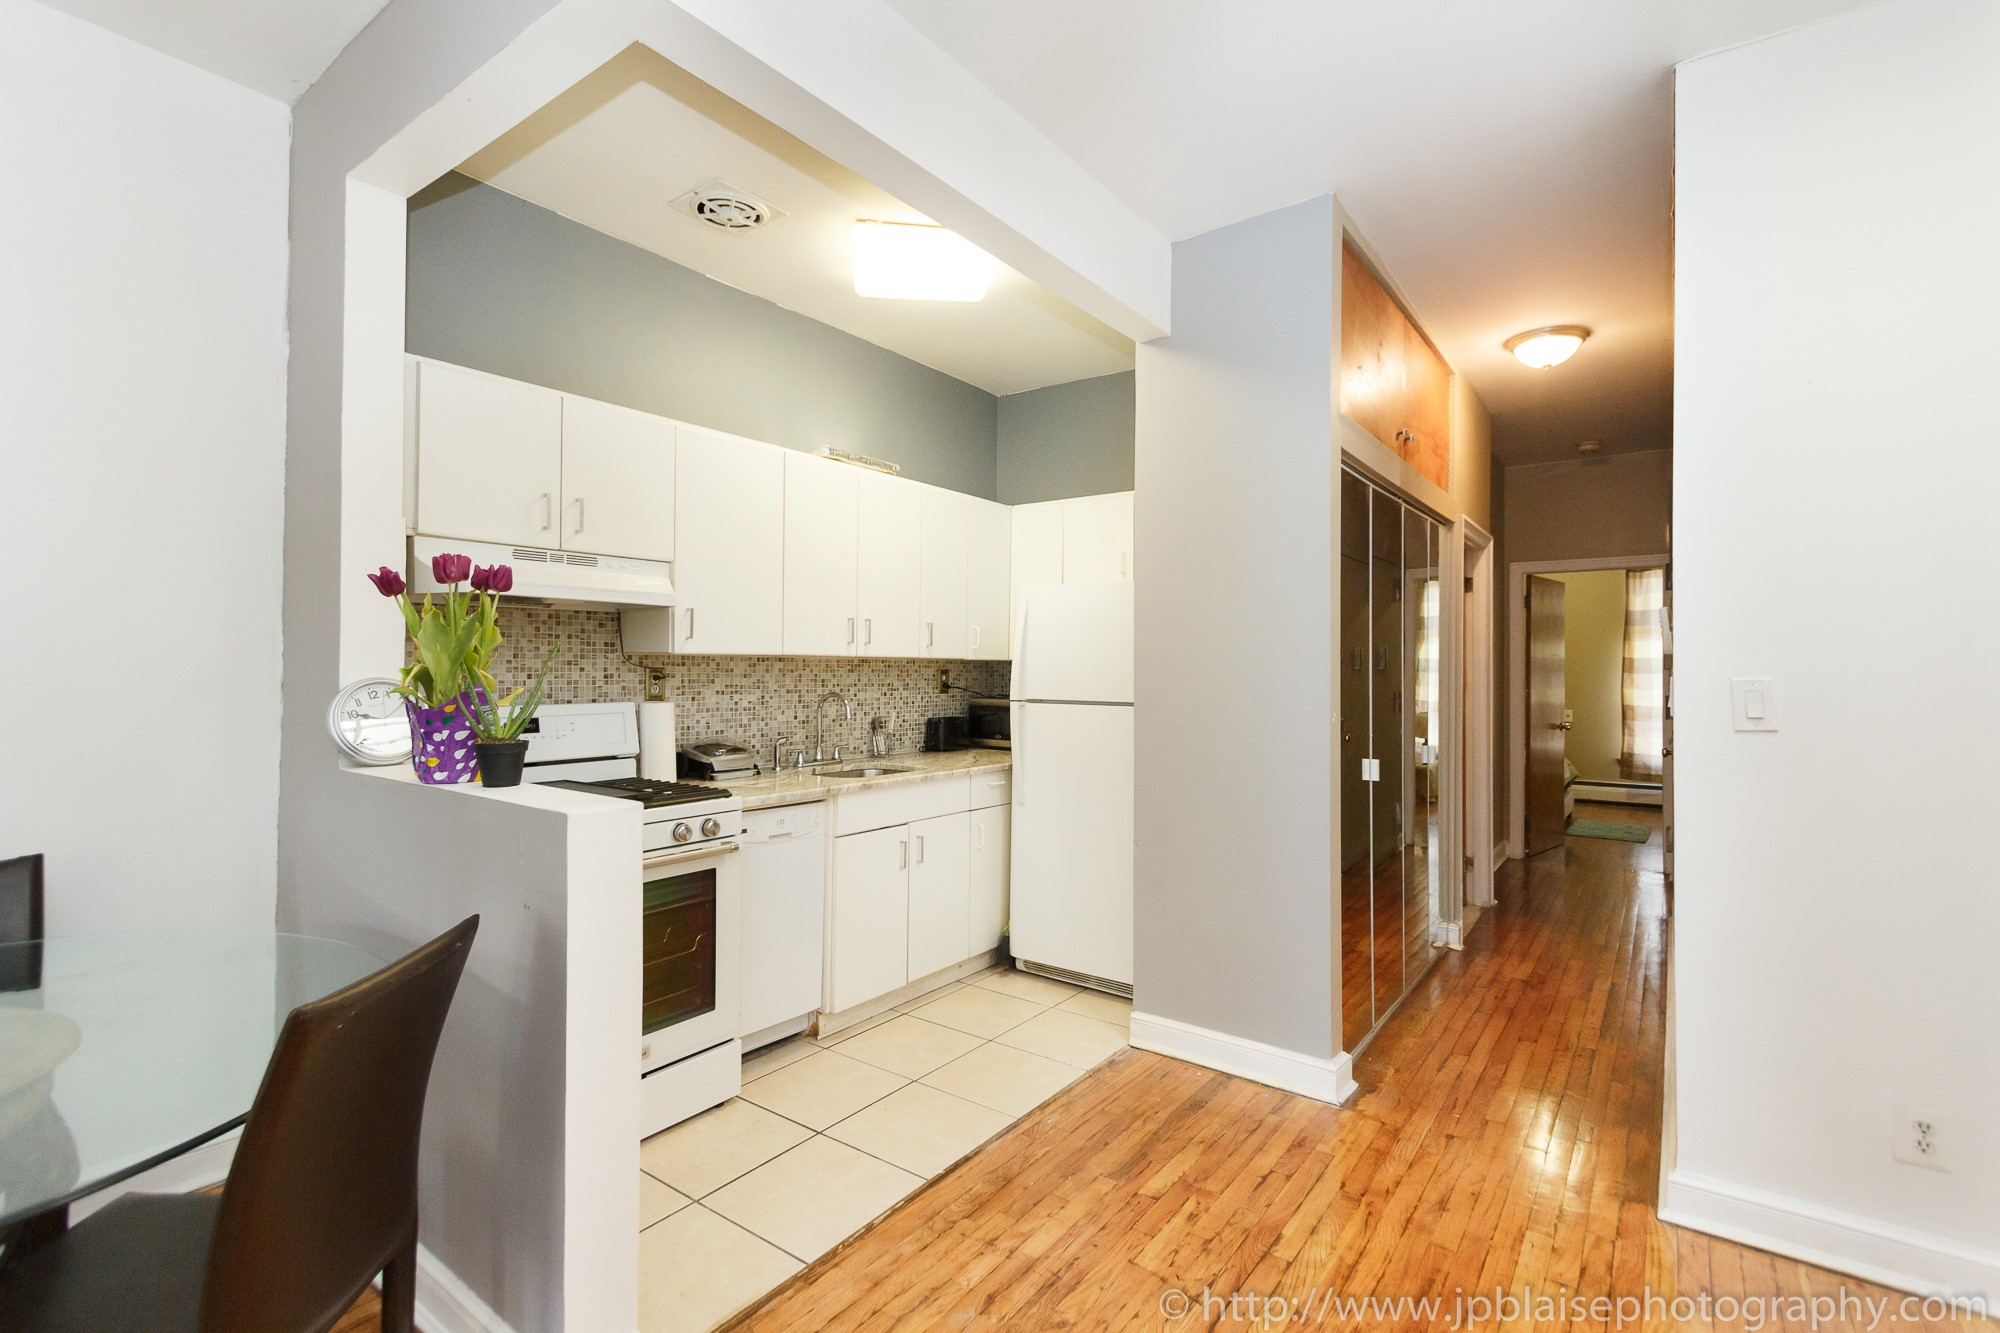 NYC apartment photographer diaries: one bedroom unit in ...